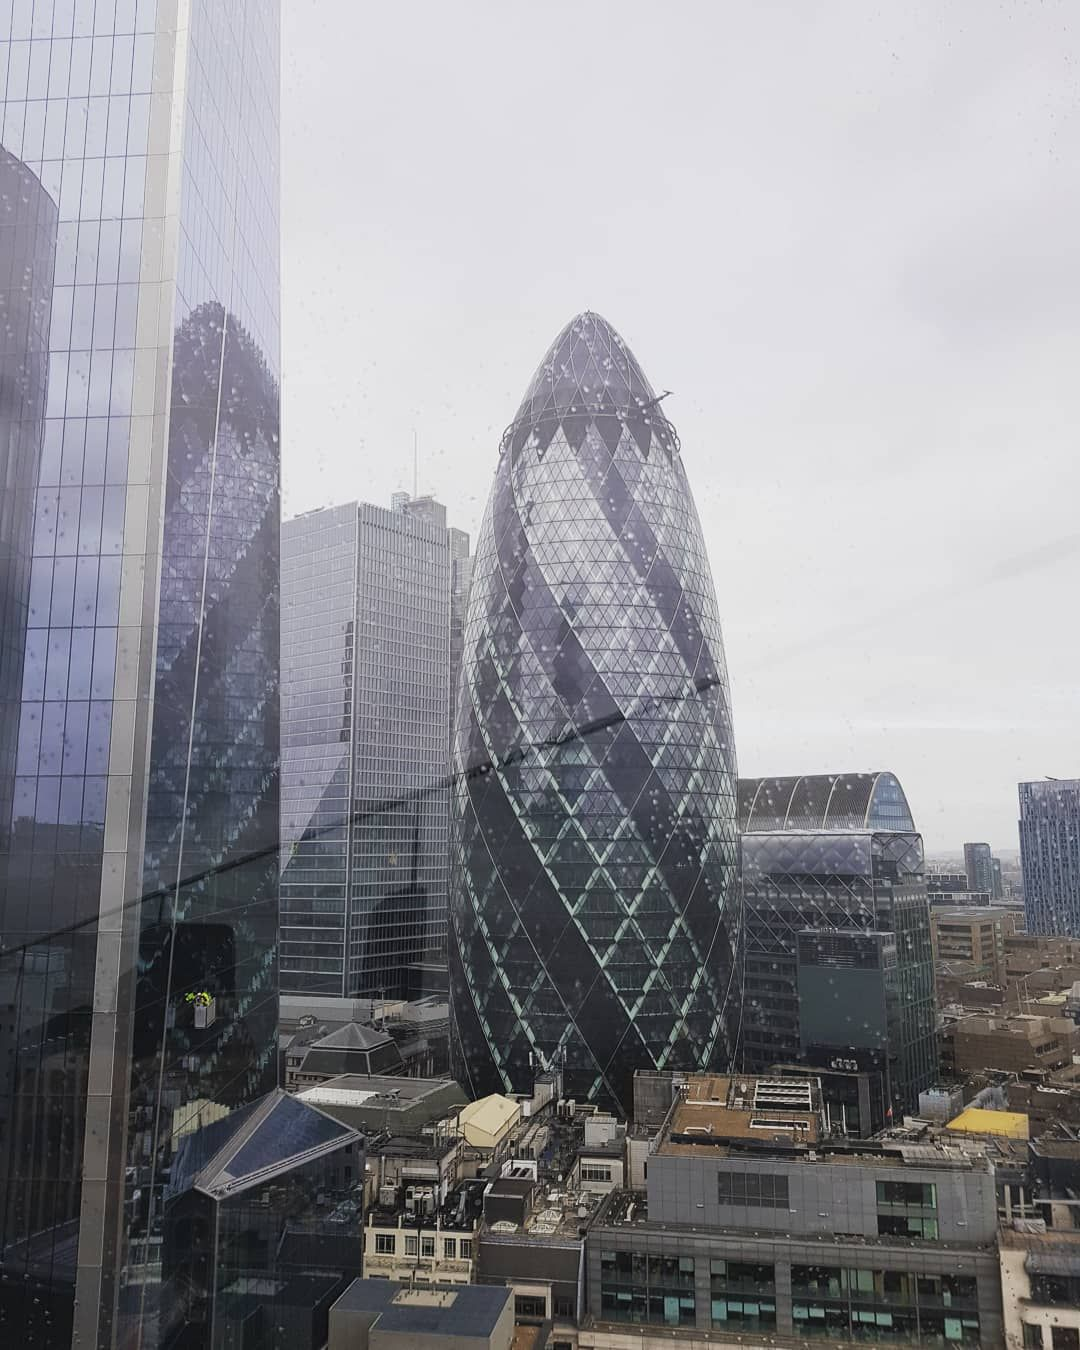 The Gherkin View From 120 Fen Court Fenchurch Street 120fenchurchstreet London Gherkin Rooftopgarden Ec3m Rooftop Garden Sydney Opera House Opera House